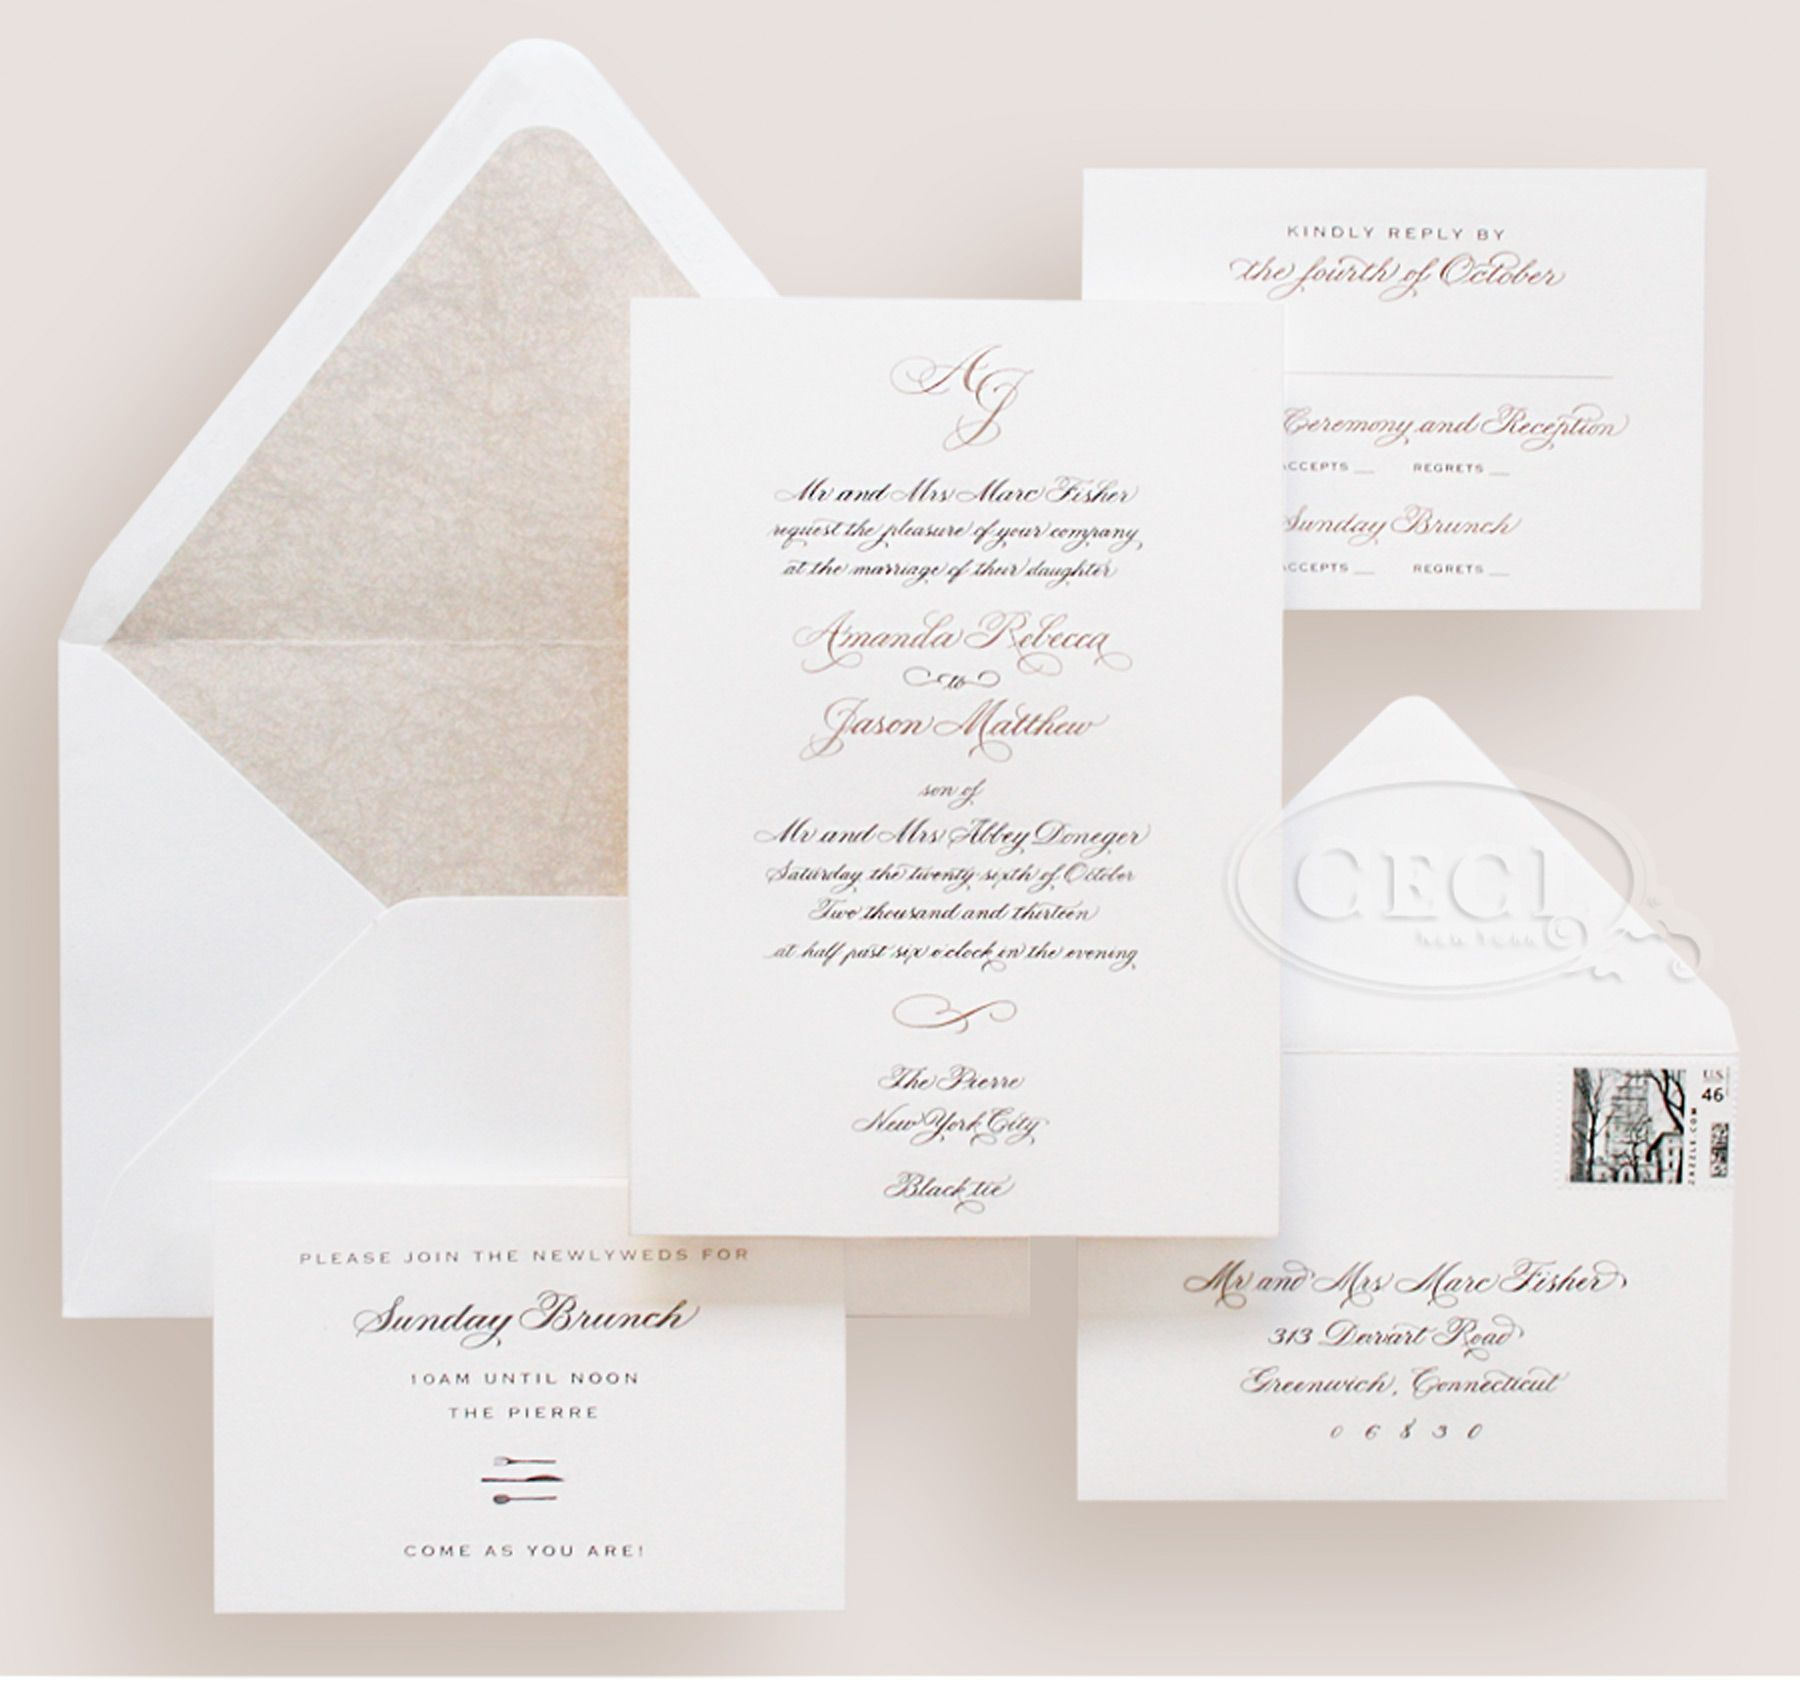 Luxury Wedding Invitations by Ceci New York - Our Muse - Classic ...